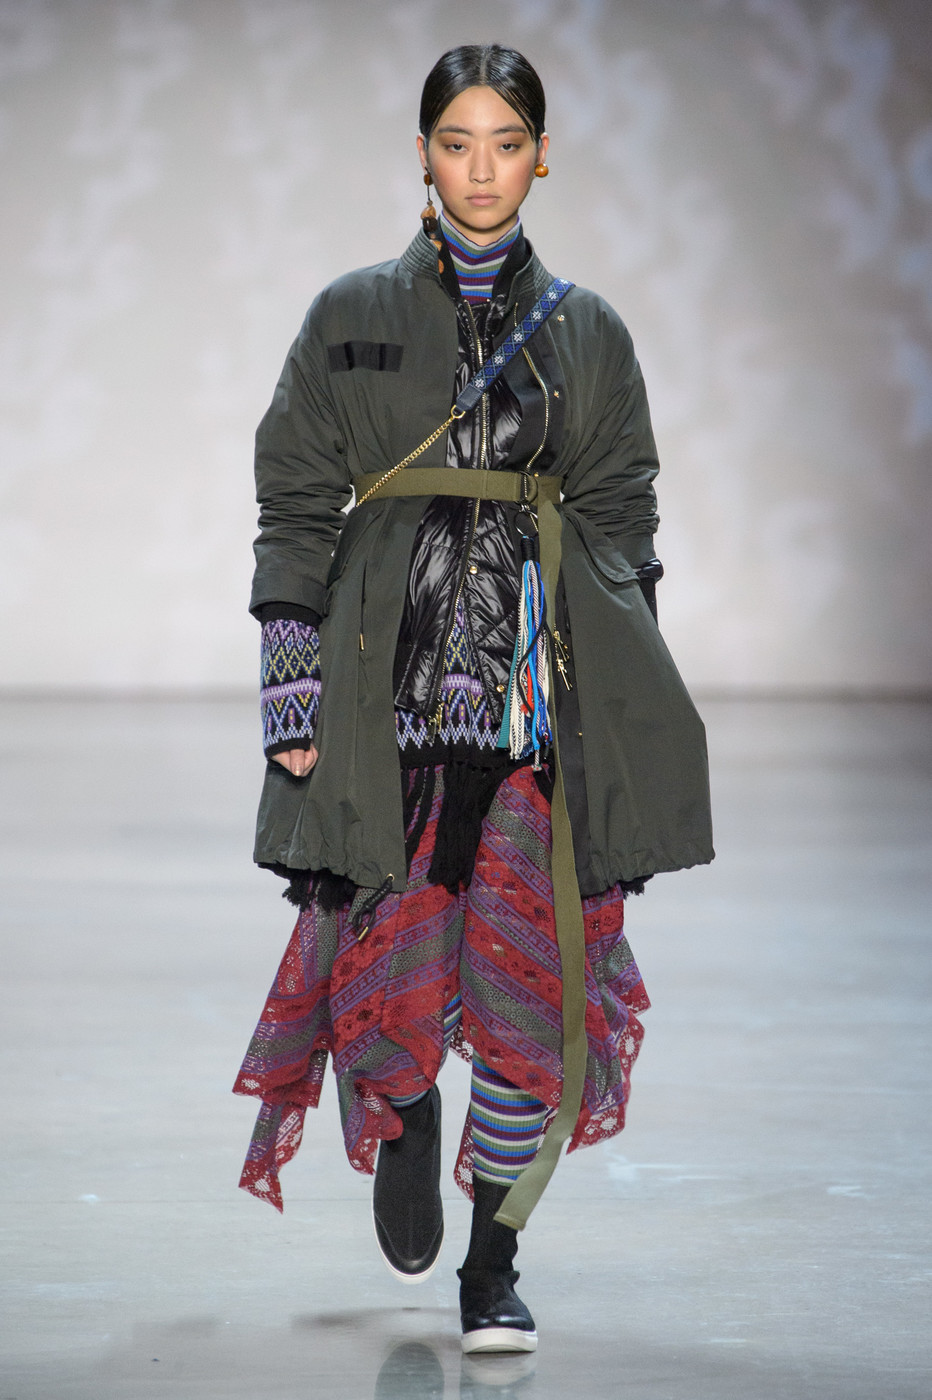 Vivienne Tam Fall 2018 Runway Pictures - Livingly